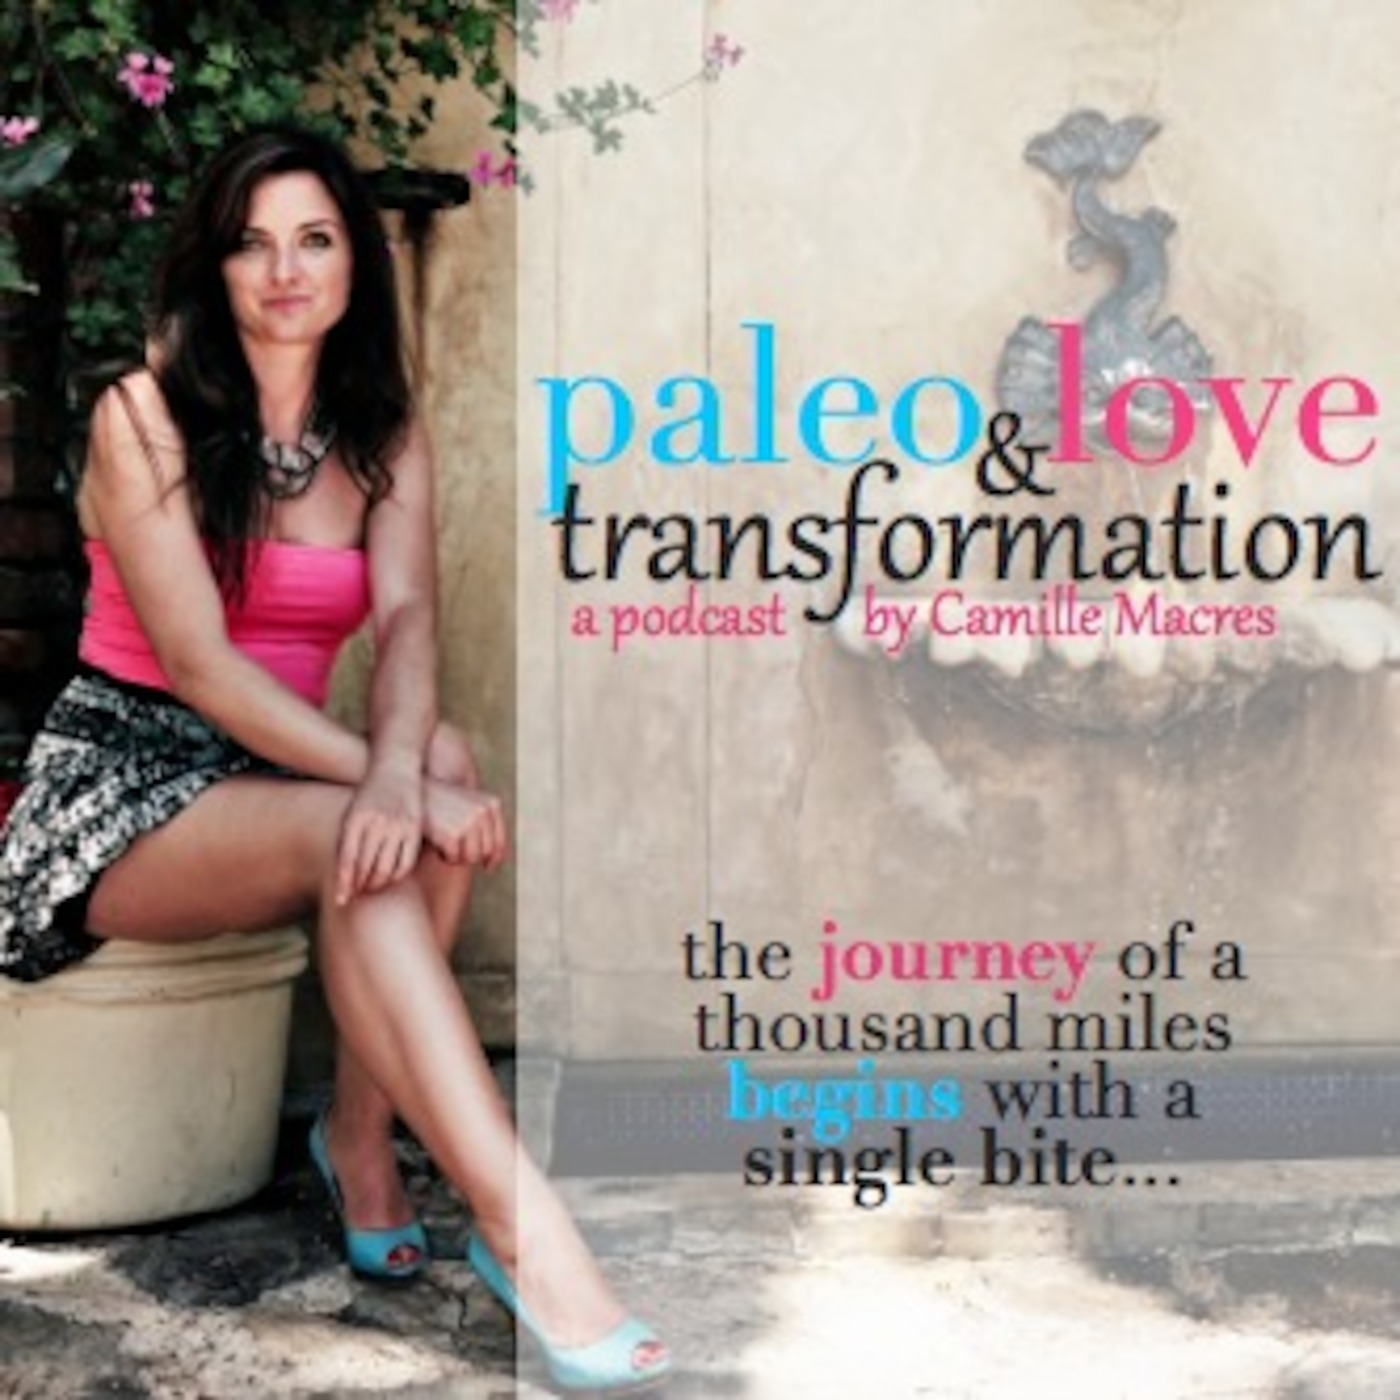 Paleo, Love & Transformation